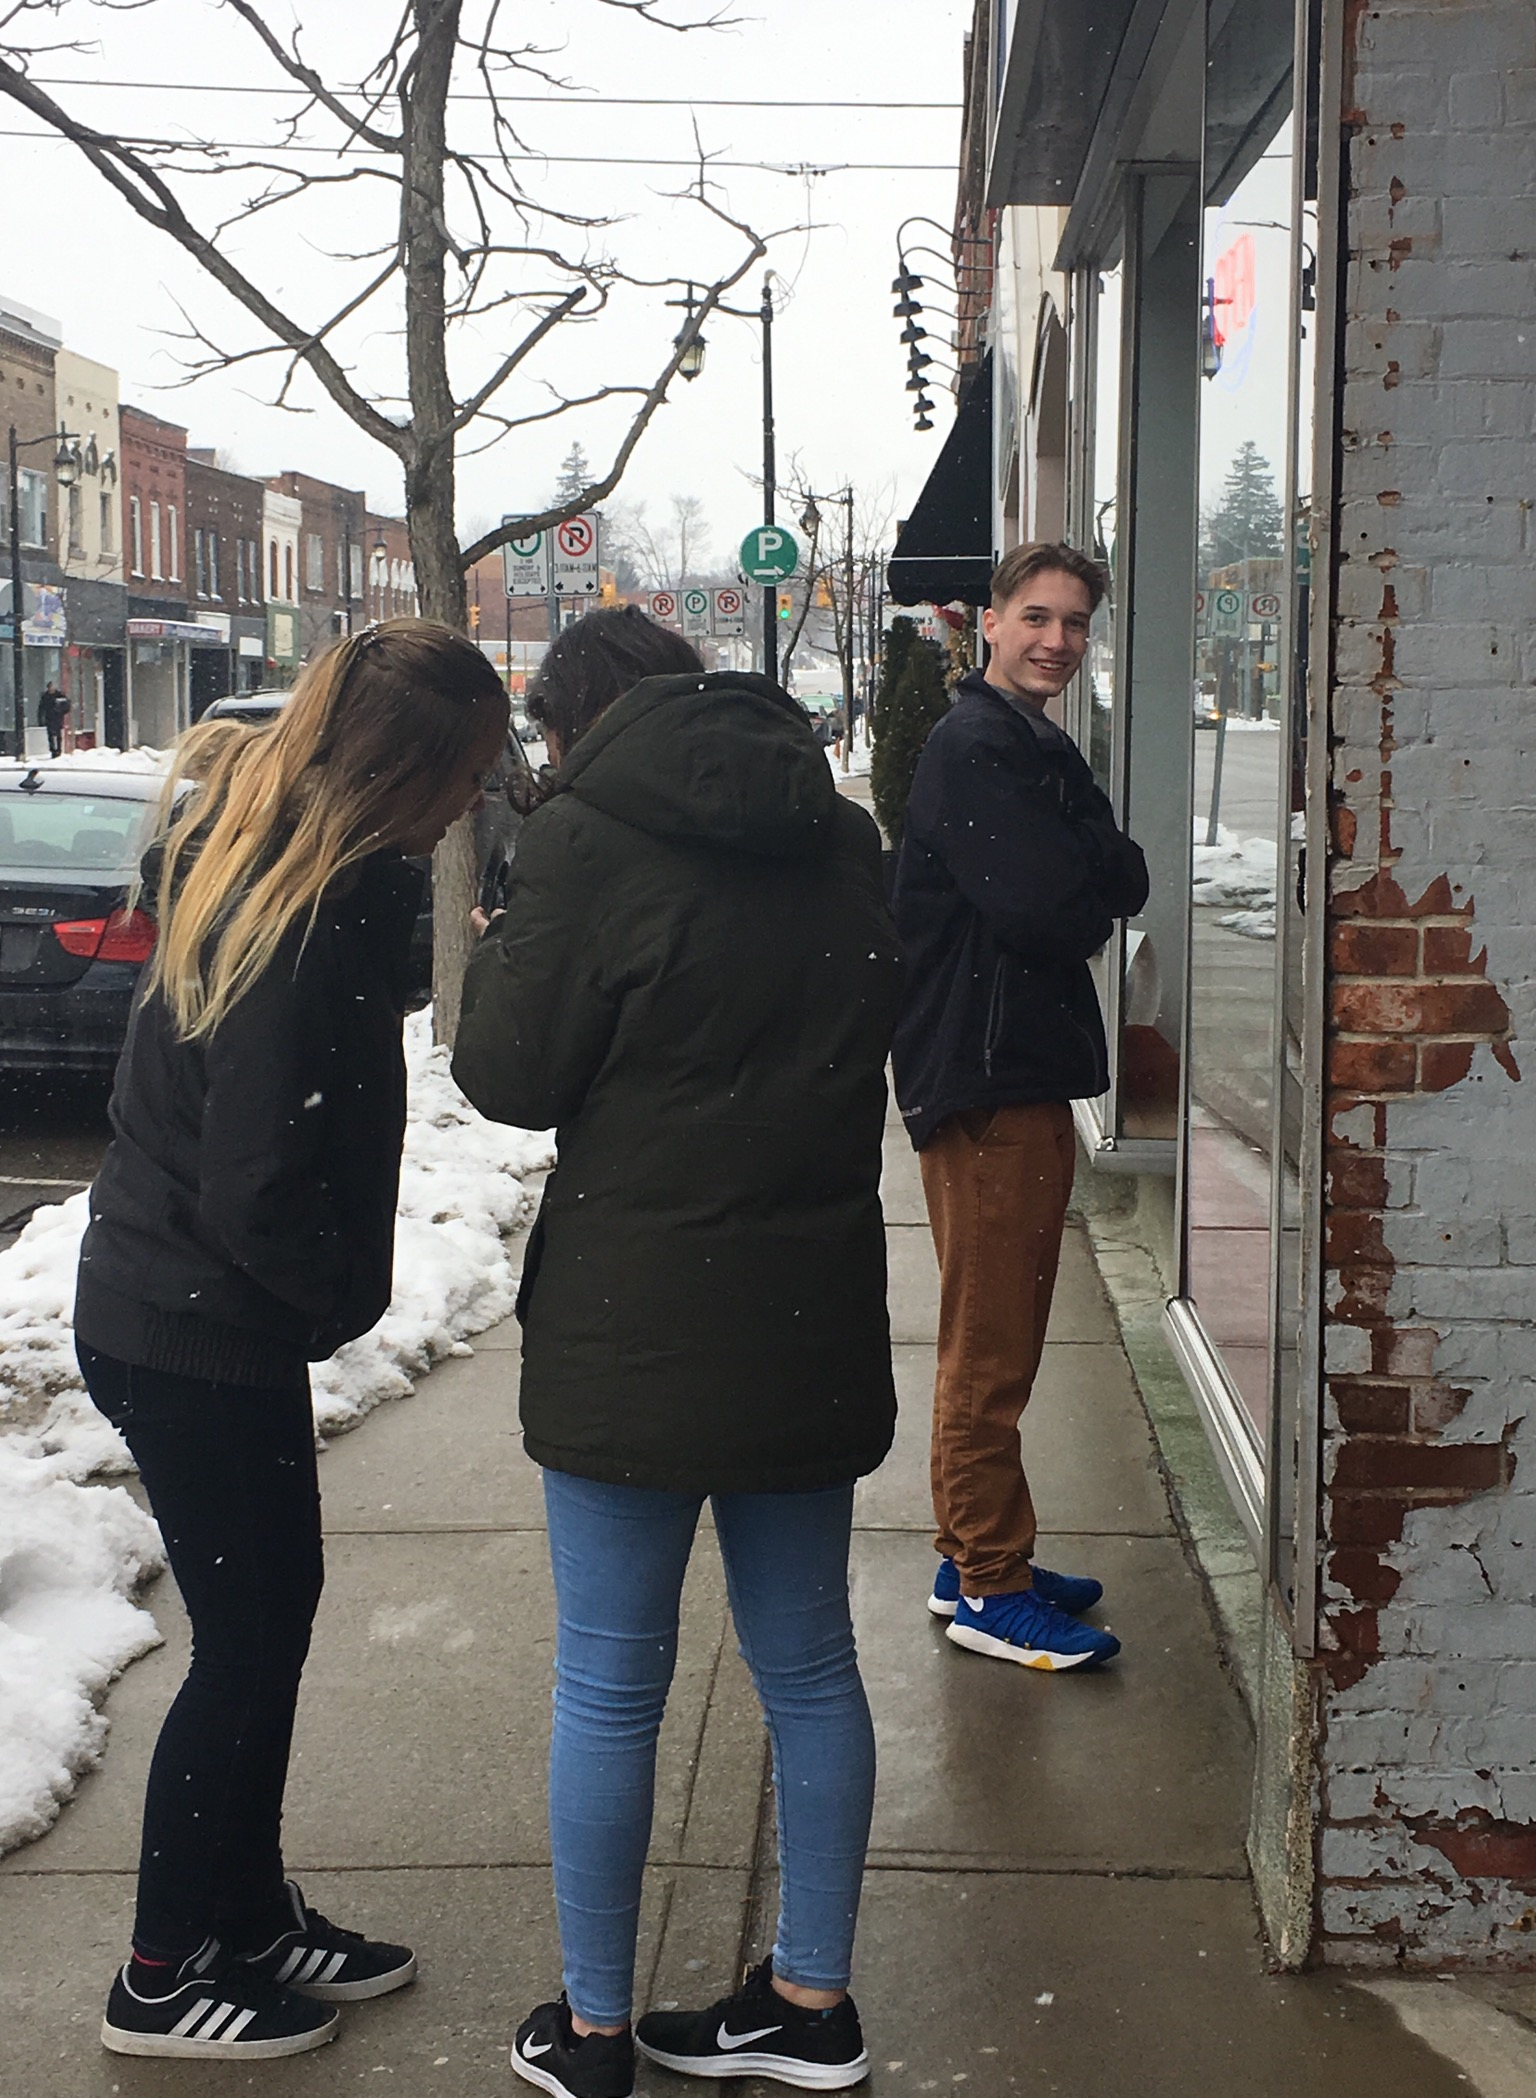 Jenn, Emily and Alex recently in downtown Simcoe … we are fans of the idea of 'psychogeography', which refers to the art of exploring cities, towns and neighbourhoods by walking without a defined aim. Check out the book  Psychogeography  by Merlin Coverley for an interesting overview.